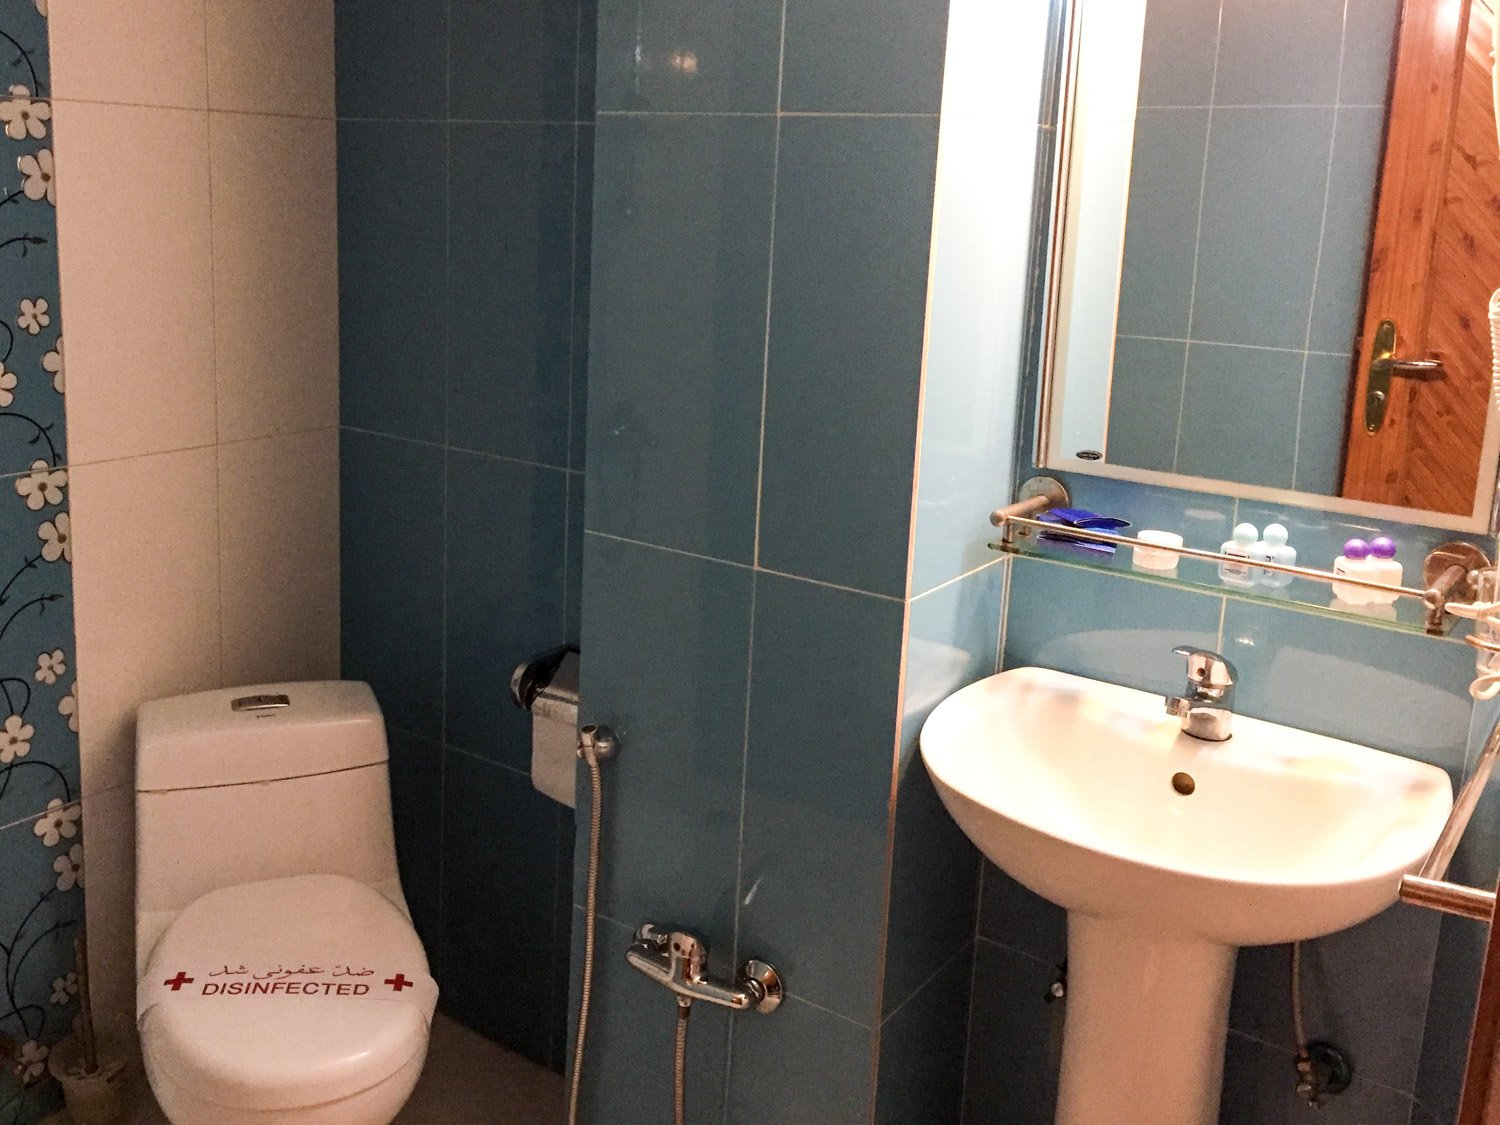 The bathroom at the Setareh Hotel Isfahan was clean with plain blue tiles